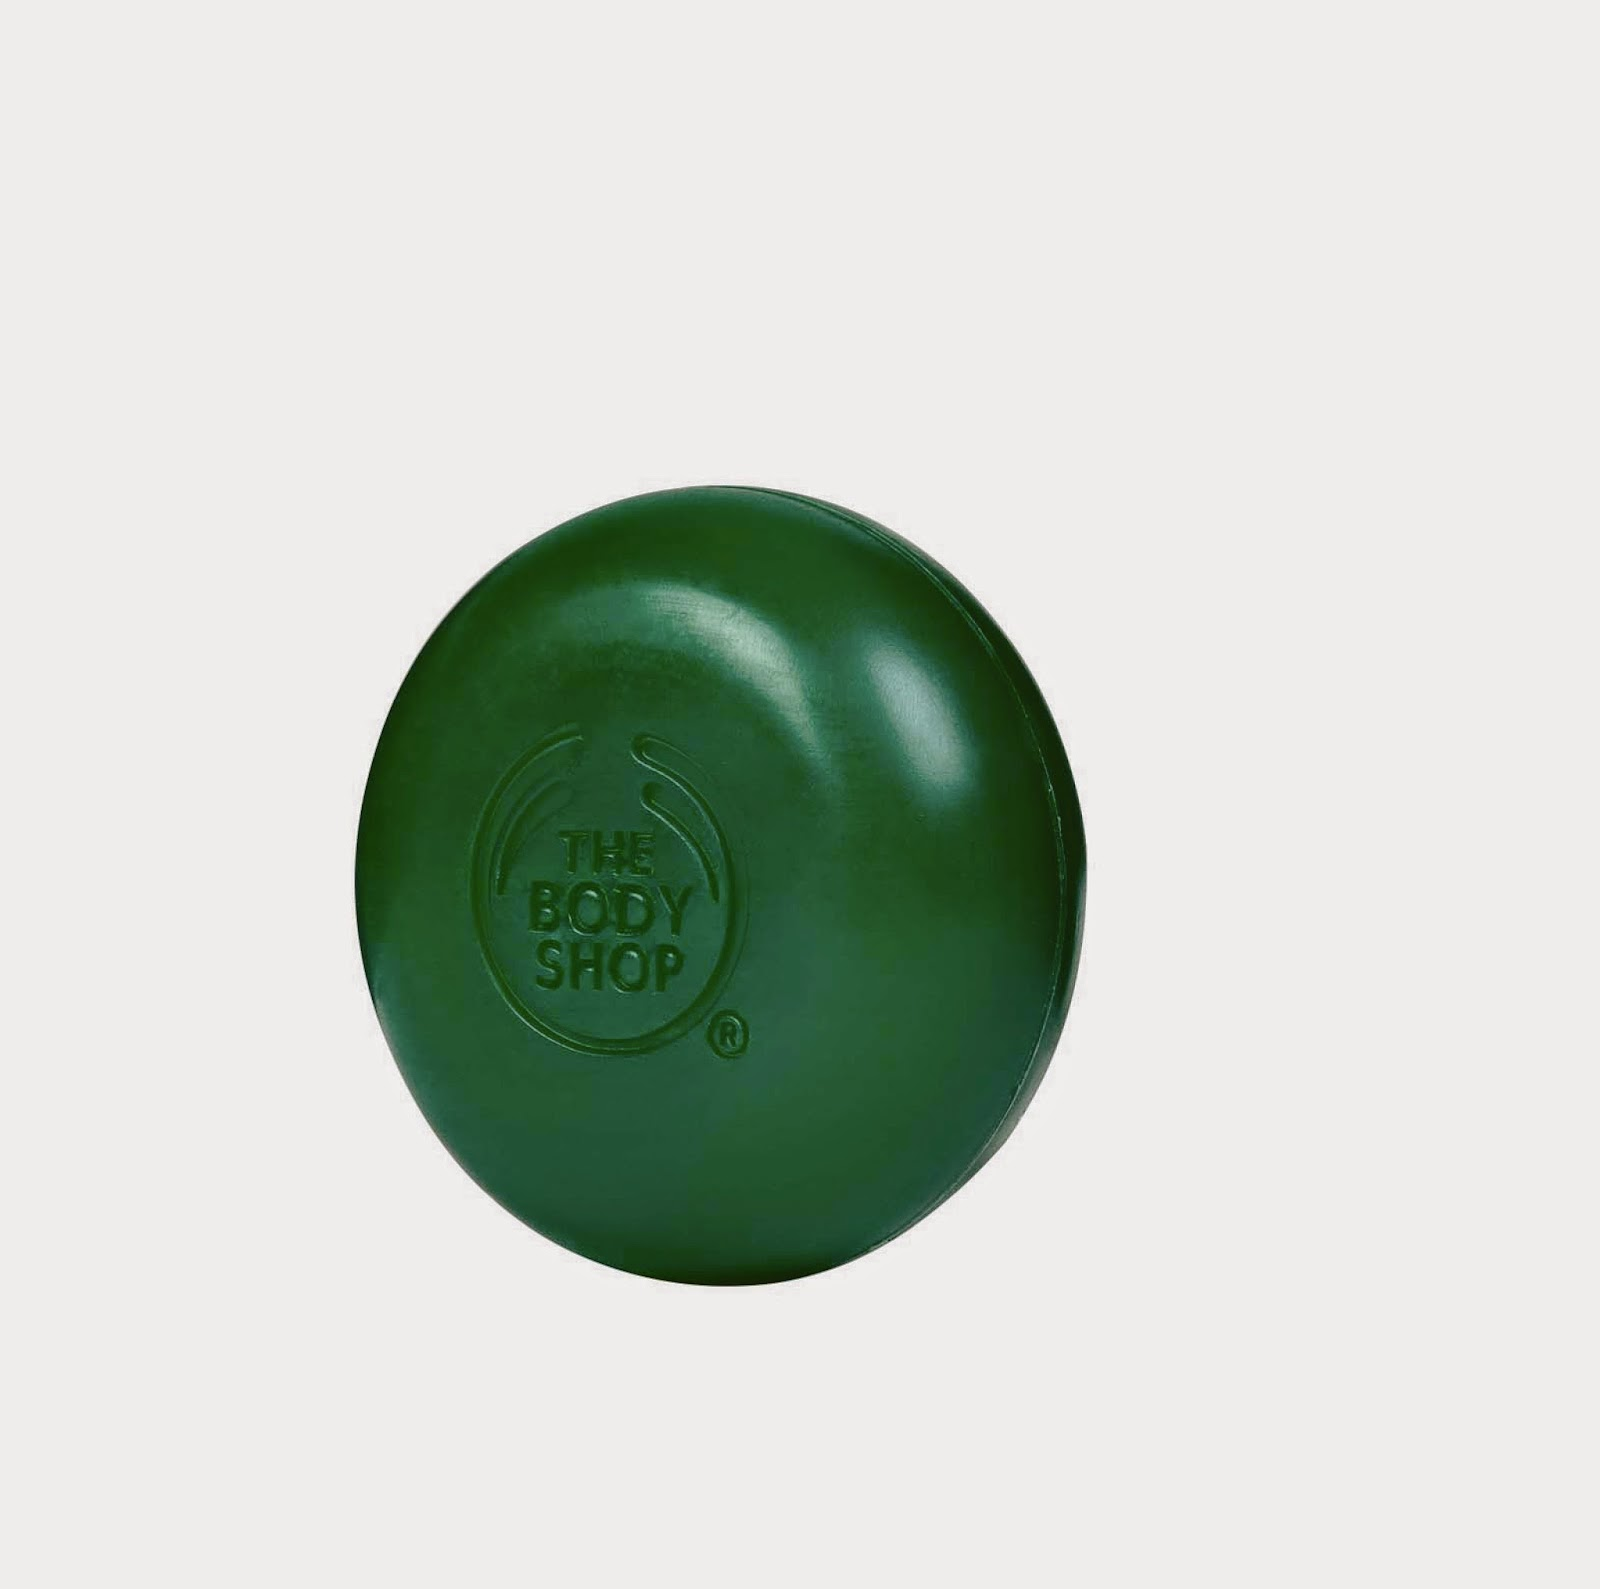 Must-Have Products This Christmas By The Body Shop - Glazed Apple Range